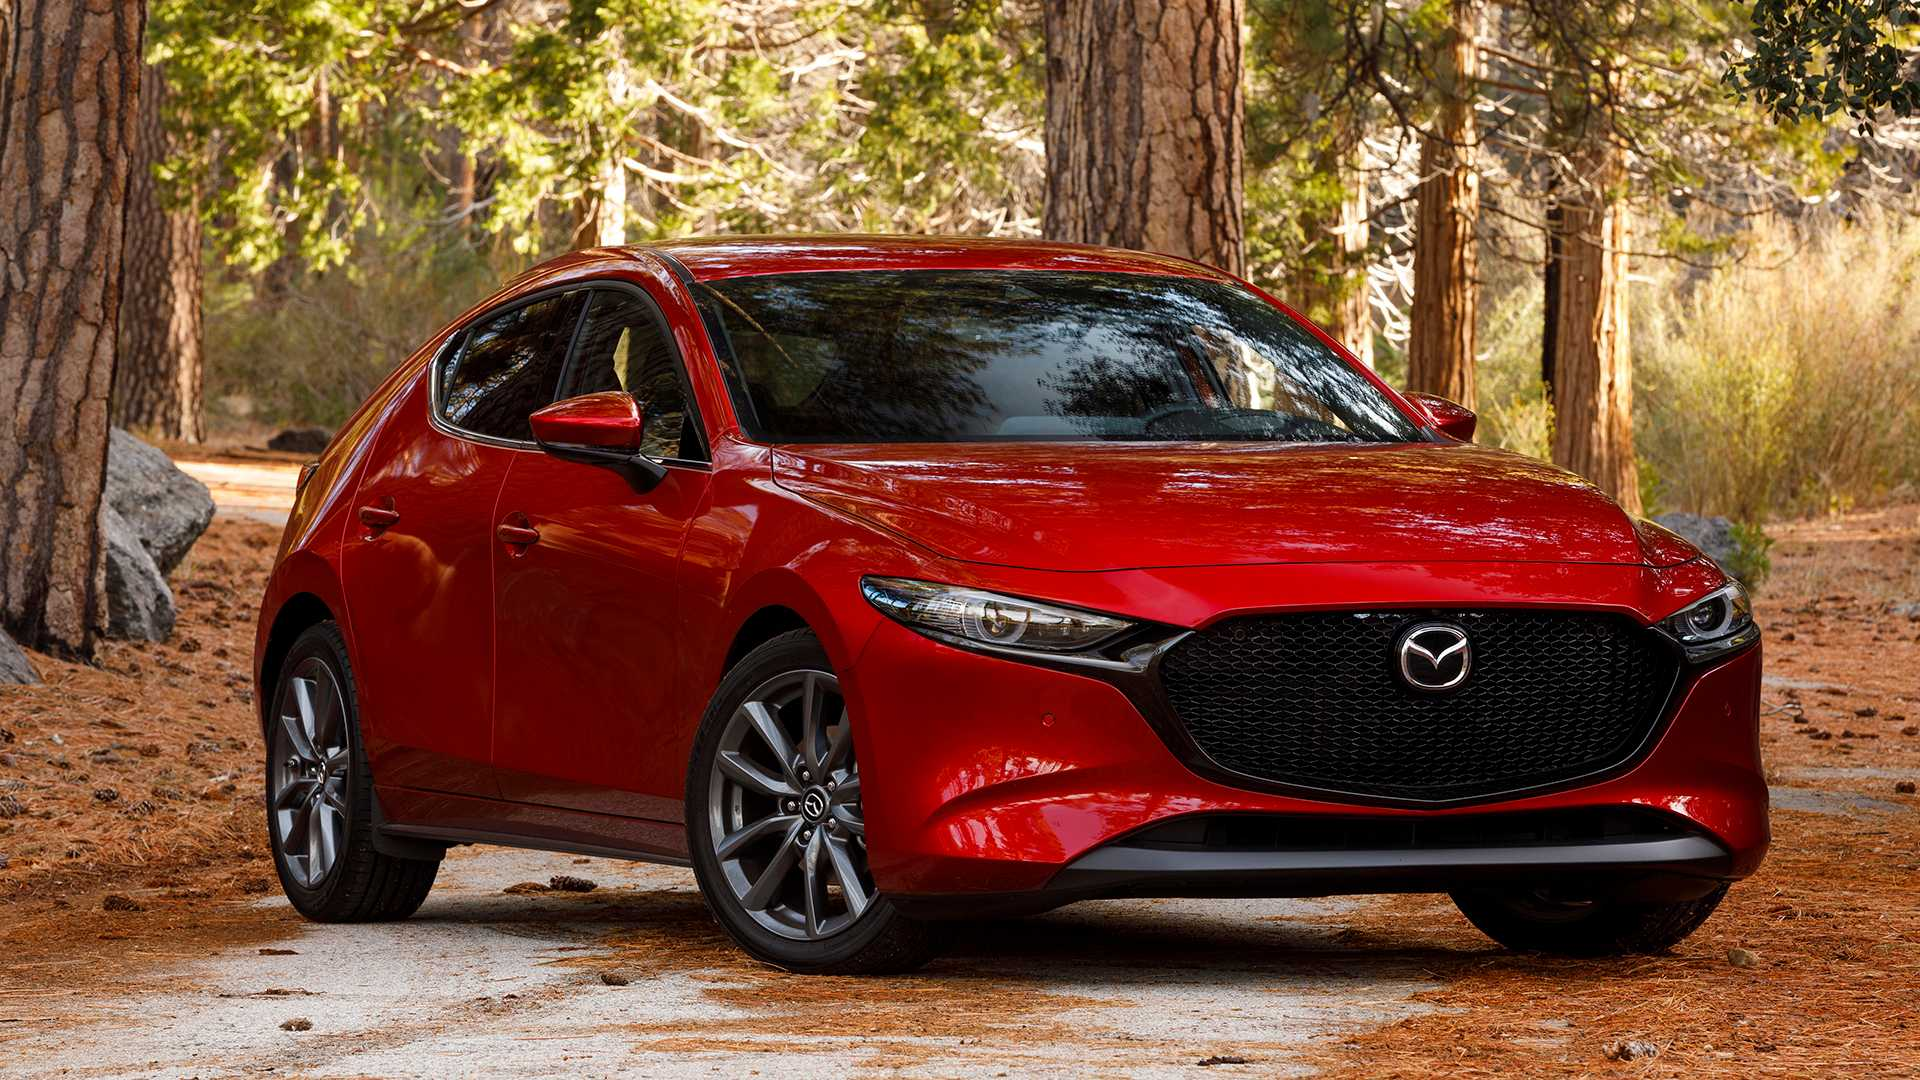 51 The Best 2020 Mazda 3 Length Exterior